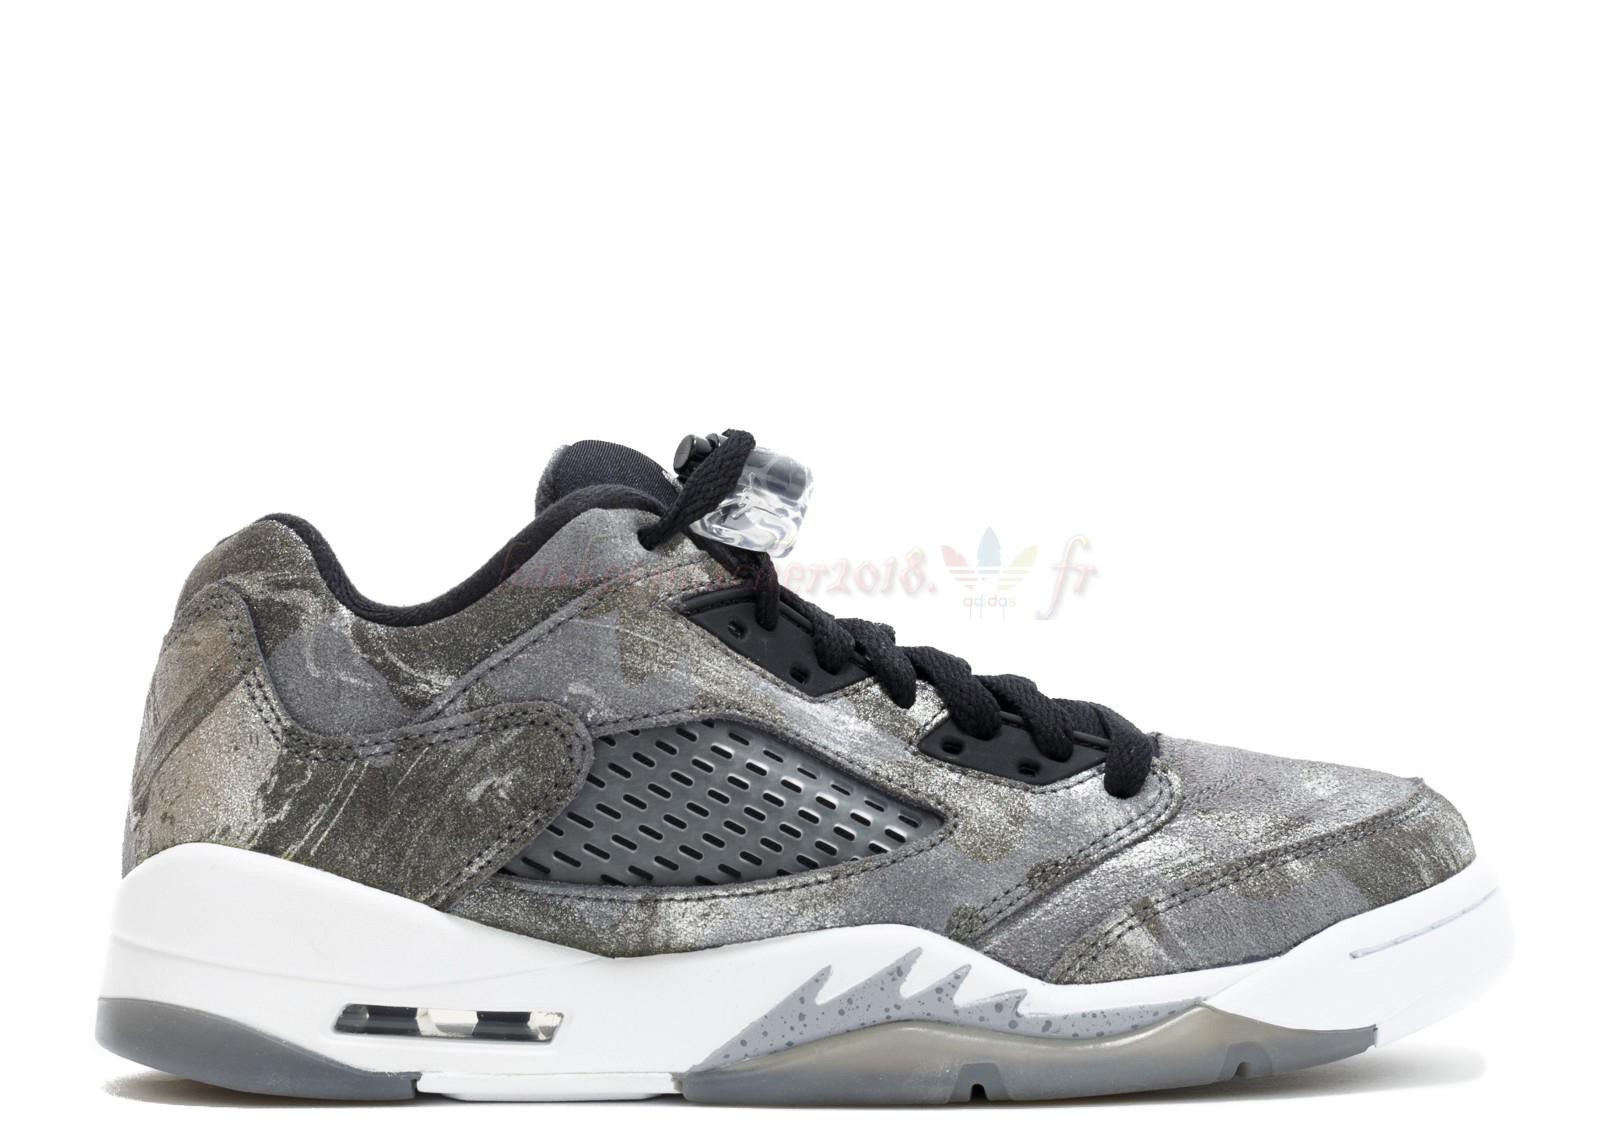 "Vente Chaude Chaussures De Basketball Femme Air Jordan 5 Prem Low (Gs) ""All Star"" Gris (819951-003) Pas Cher"